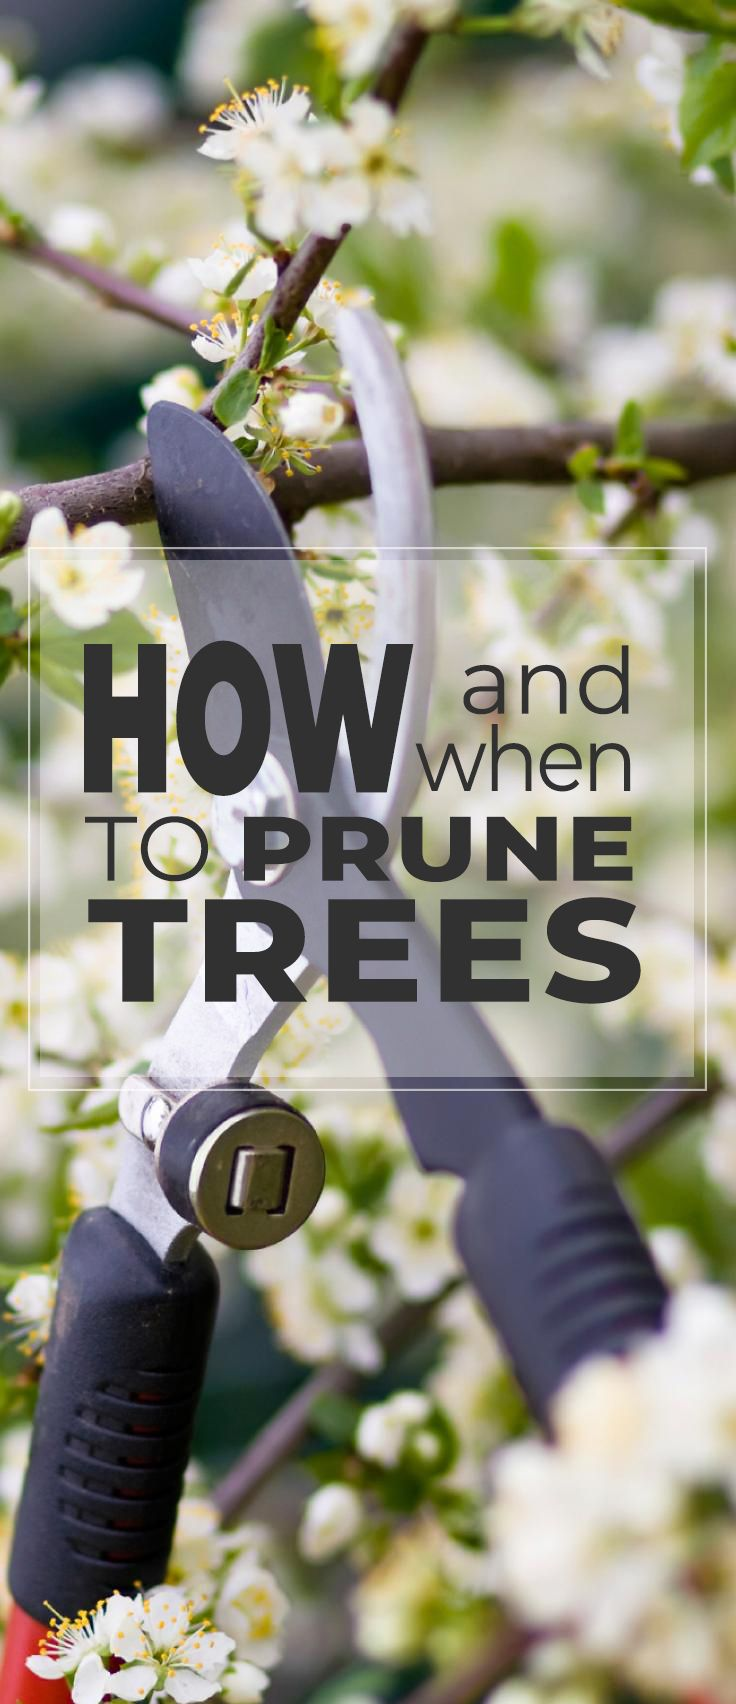 How and When To Prune Trees! • After reading this post, you will know how to prune trees correctly! We also give you specific tips on how to prune fruit trees! #howtoprunetrees #whentoprunetrees #DIYtreepruning #treepruning #howtoprunefruittrees #whentoprunefruittrees